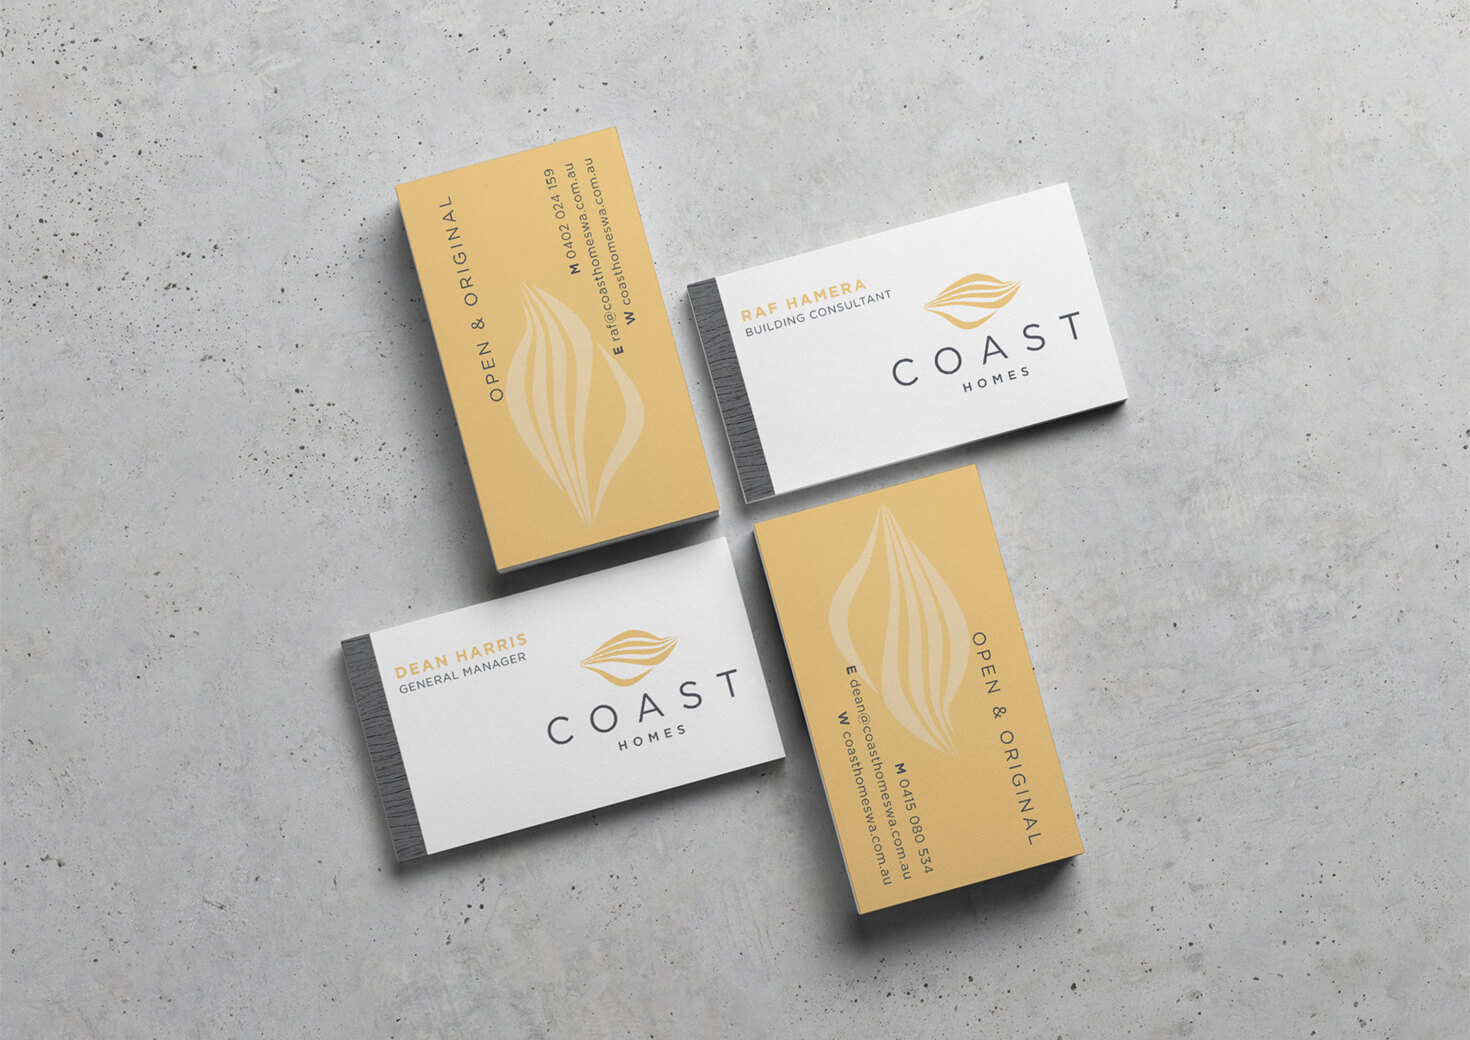 Coast Homes business cards